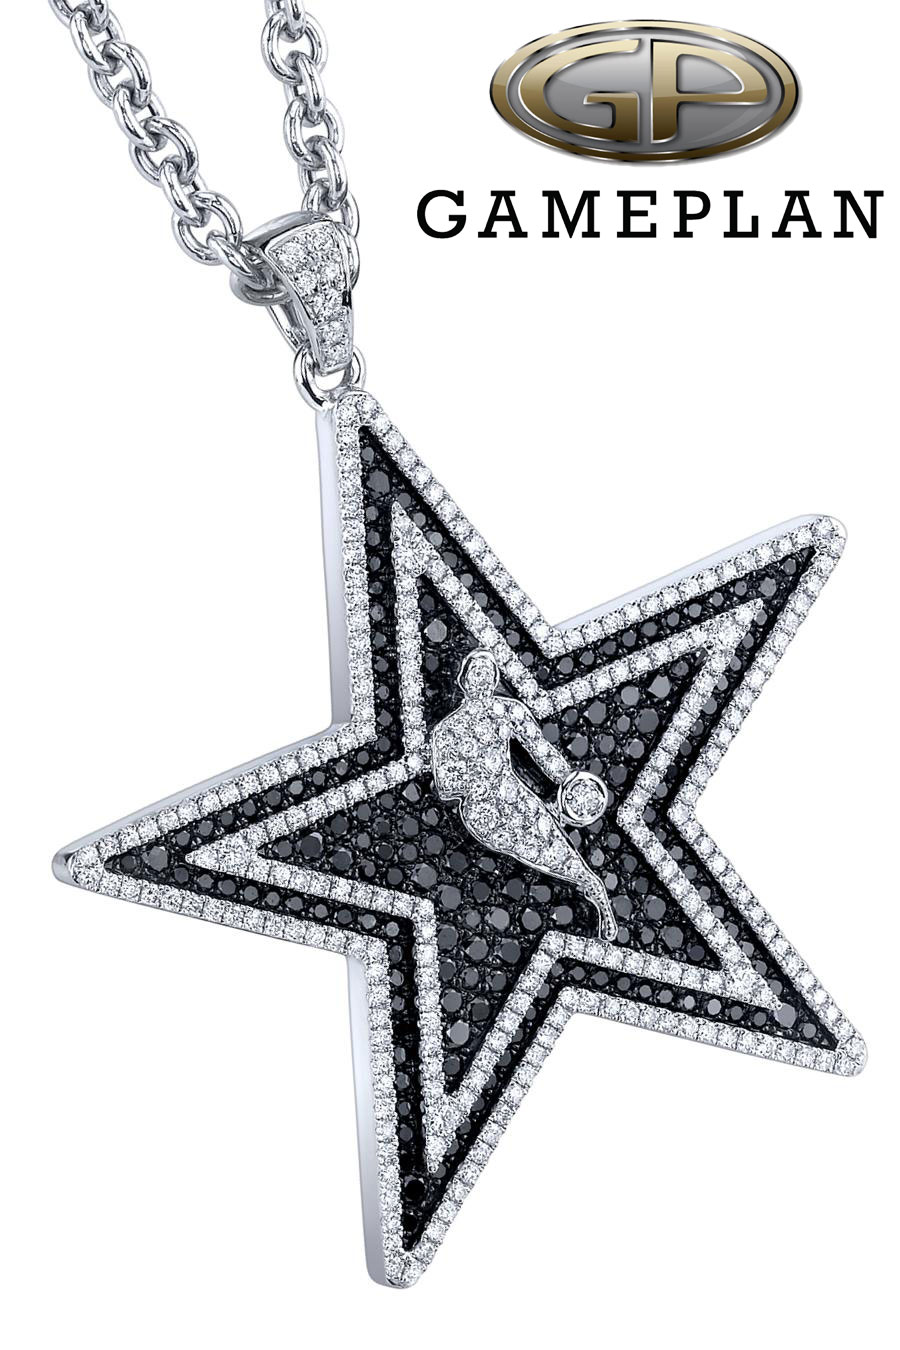 Gameplan NBA Diamond Jewelry All Star